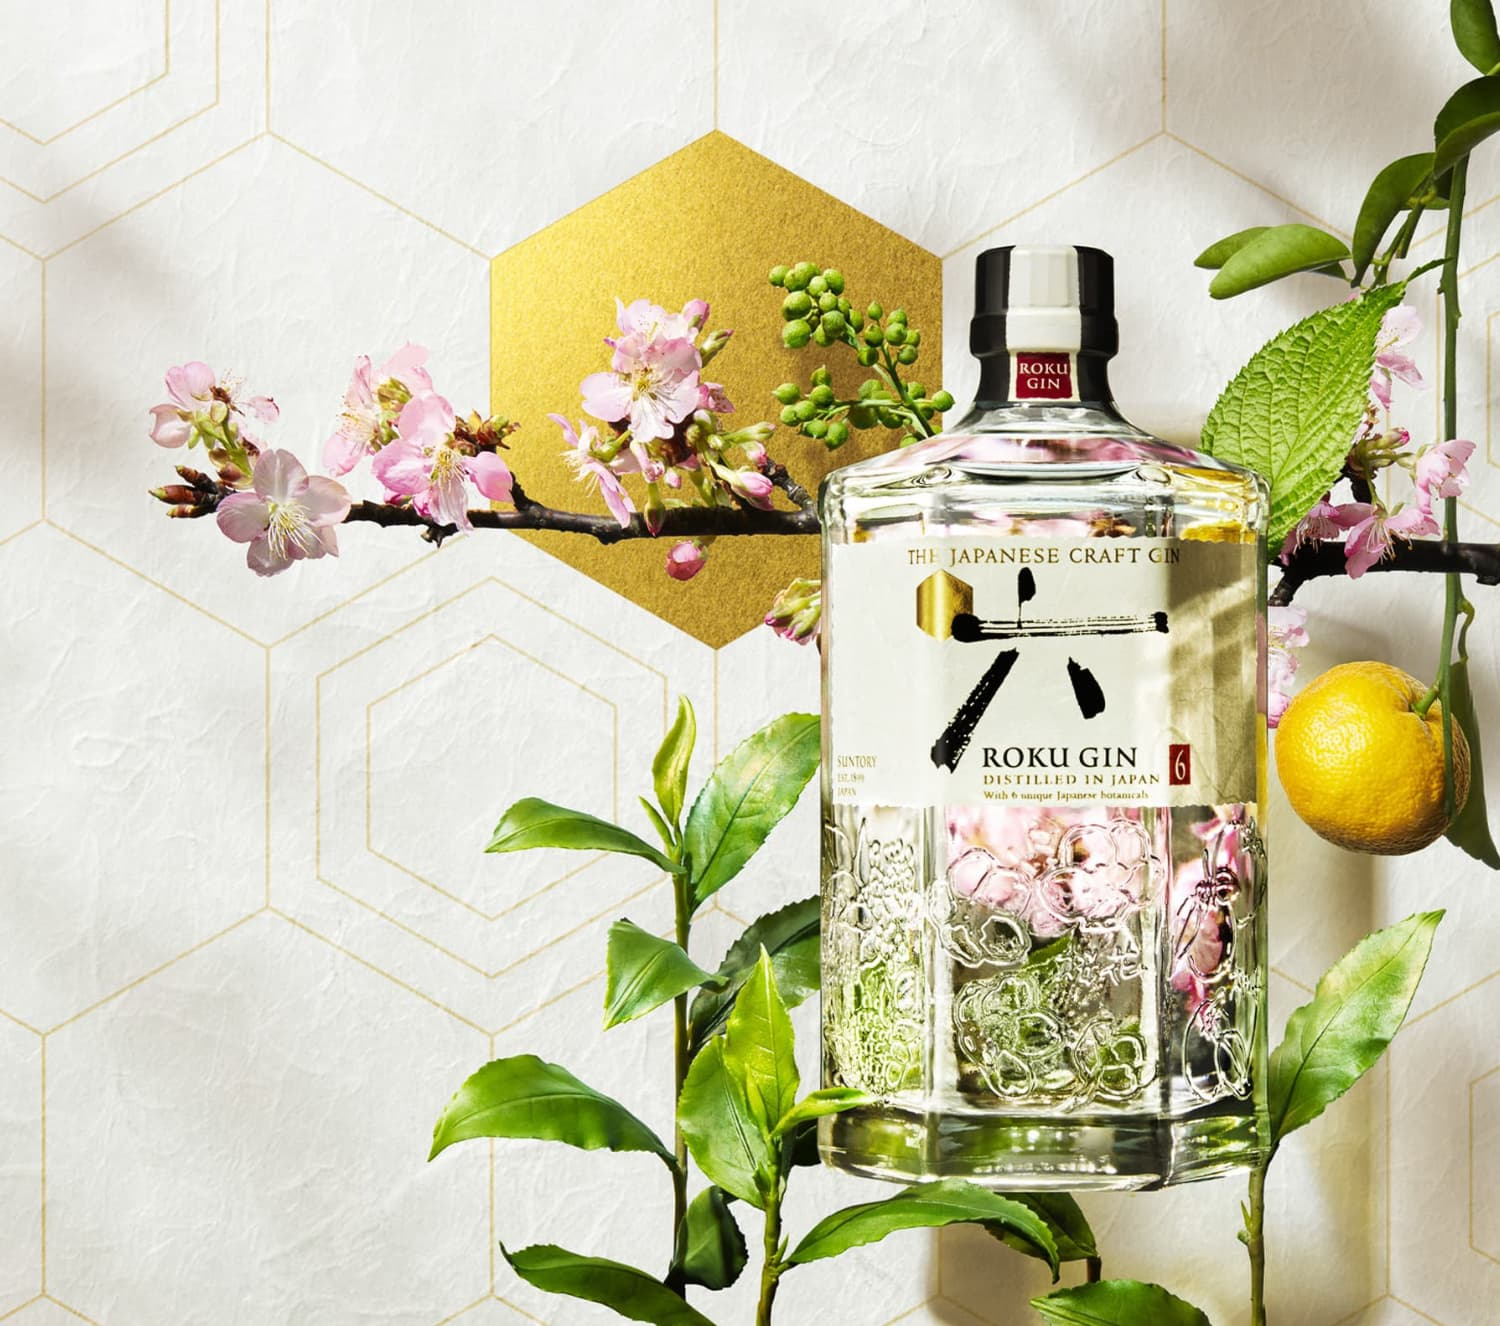 ROKU GIN ALIVE WITH THE SEASON OF JAPAN